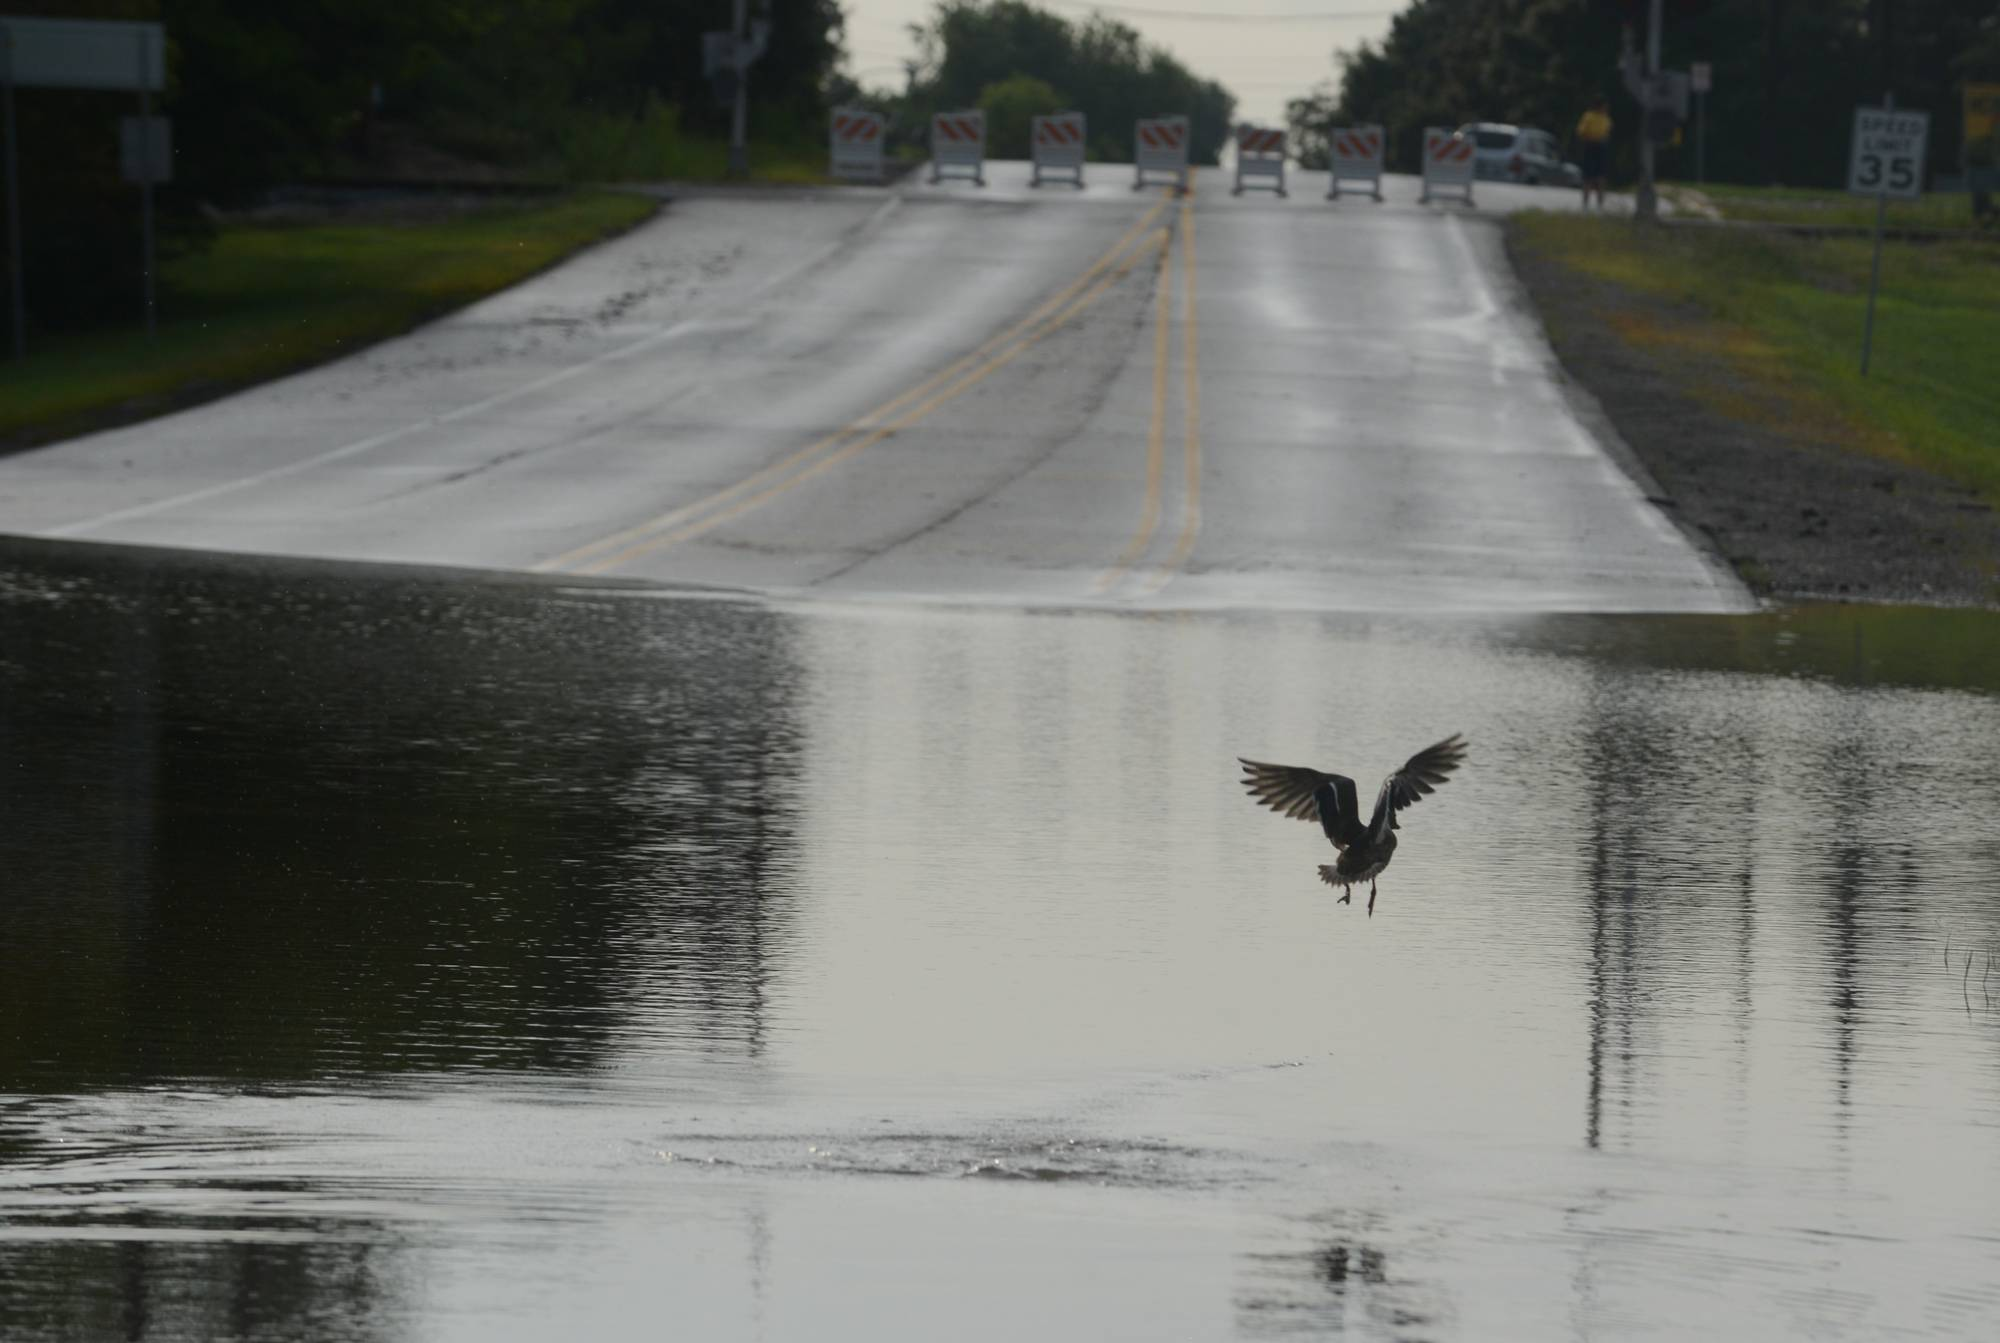 A duck was the only thing getting through the floodwaters on Irving Park Road near the Schaumburg Airport in Schaumburg on Friday morning. Heavy overnight rain closed the road to vehicles.